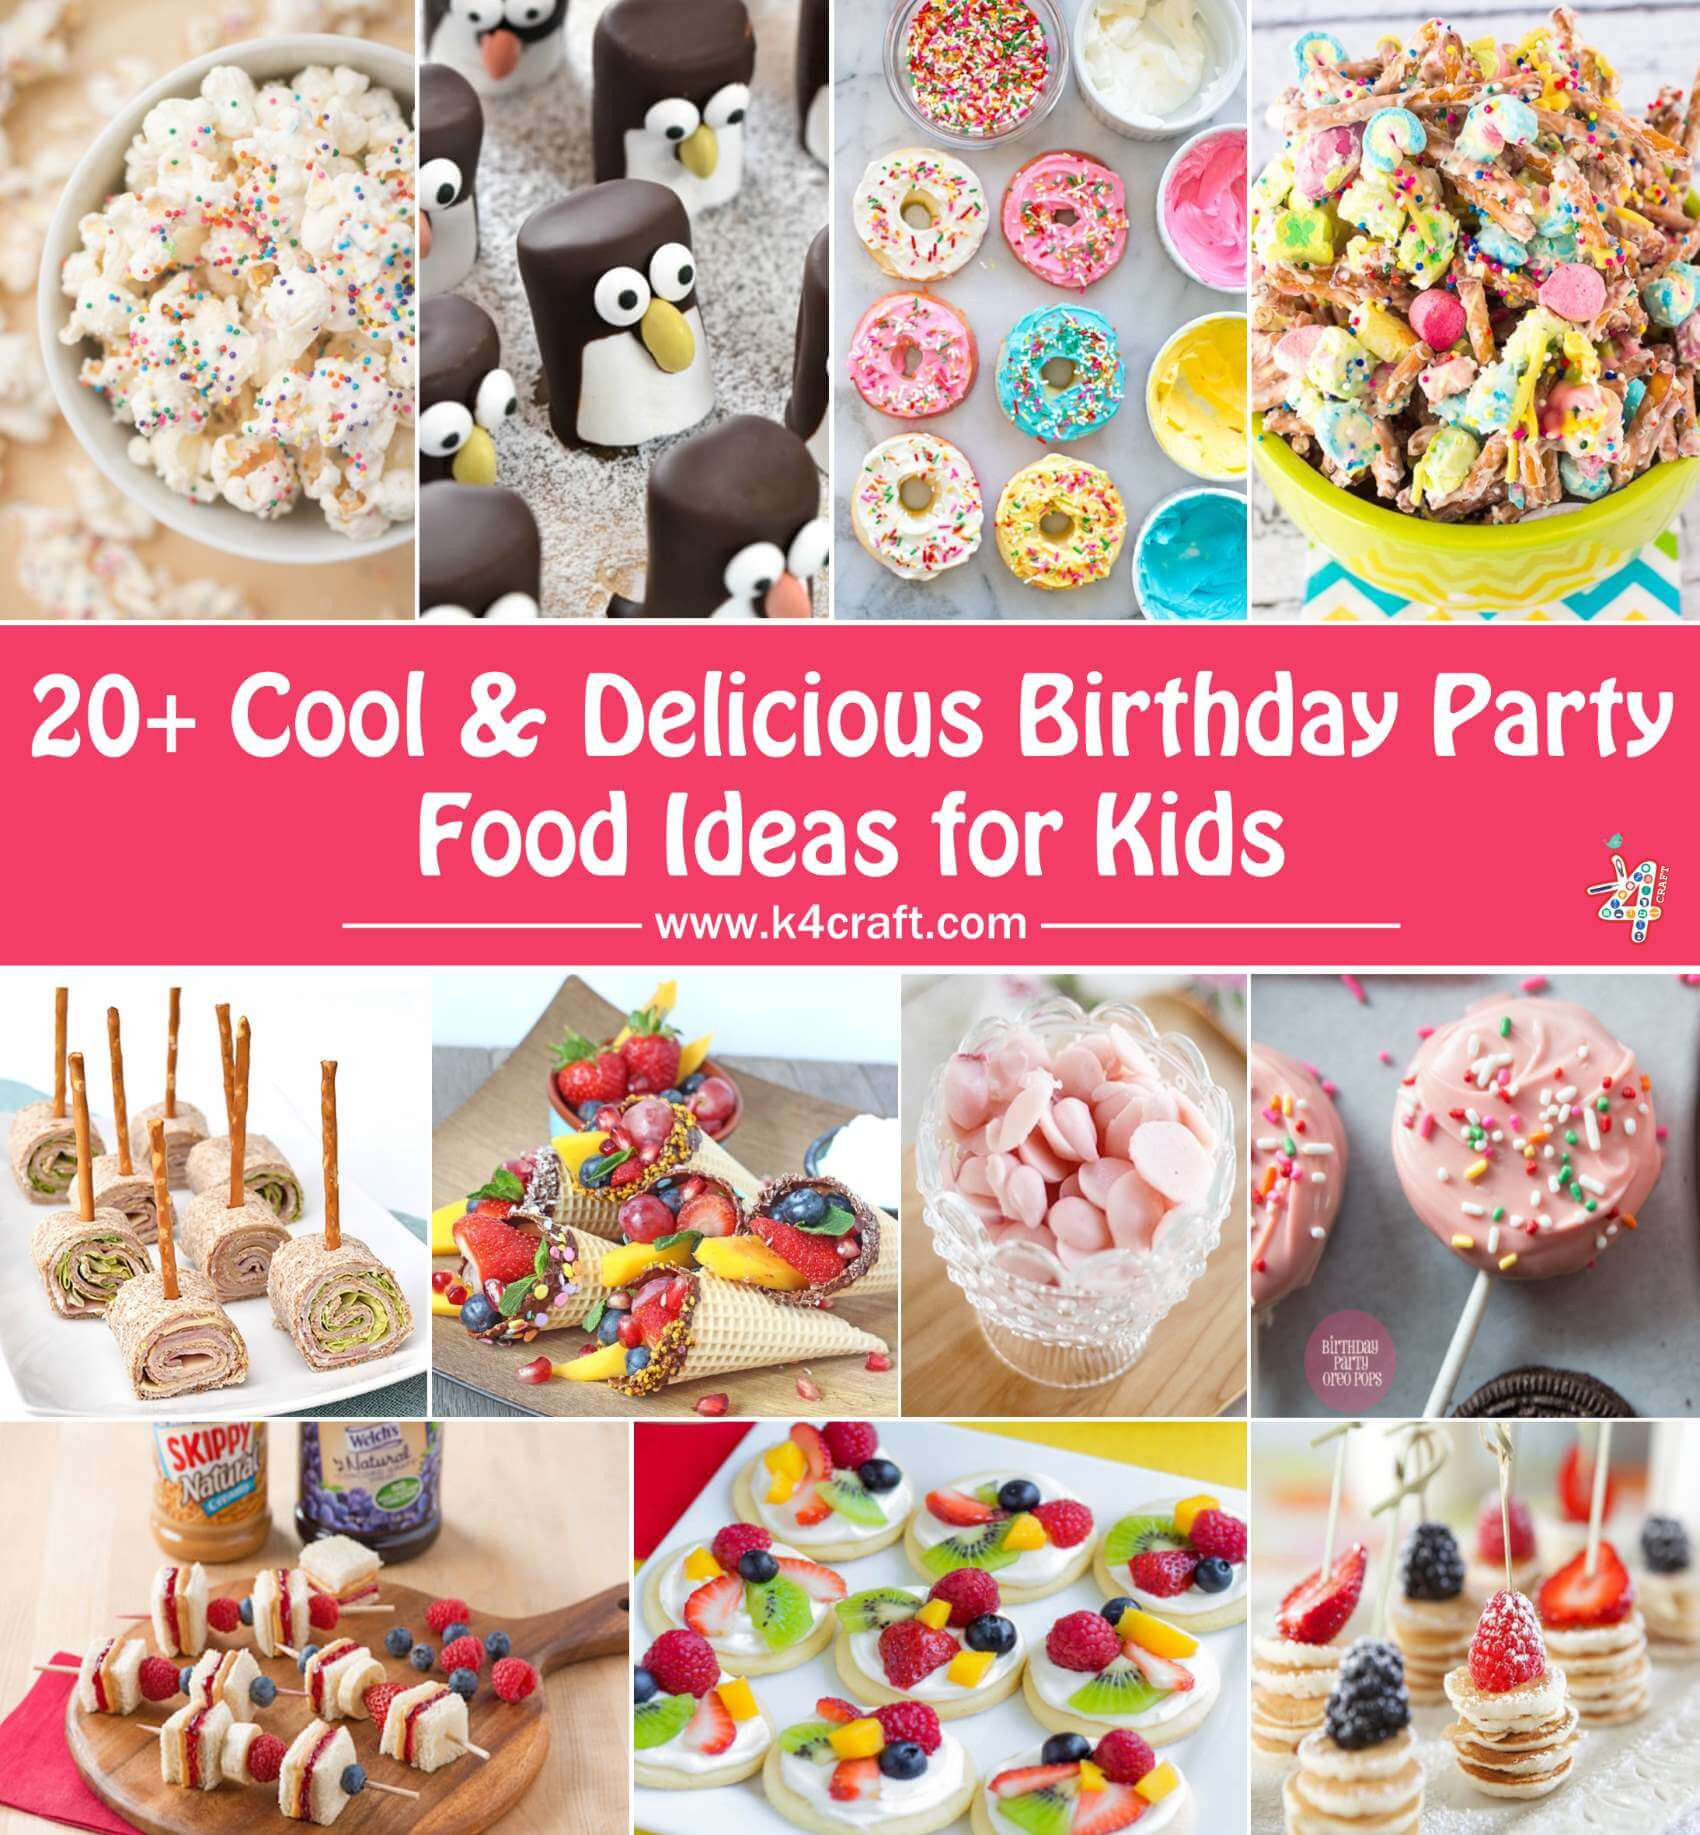 Party Food Ideas For Teenagers  Cool & Delicious Birthday Party Food Ideas for Kids • K4 Craft